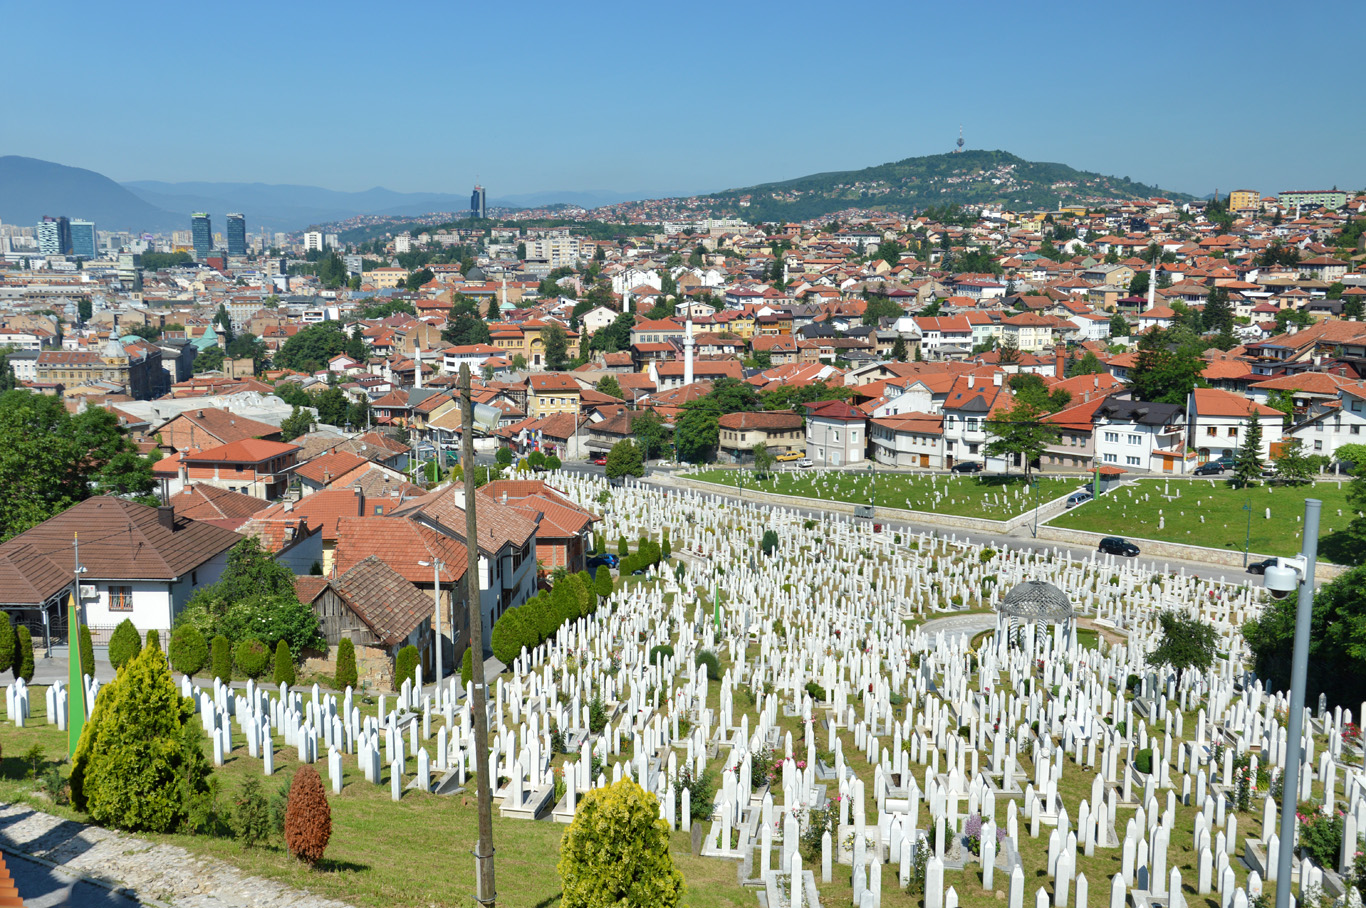 The cemetery seen from Yellow Fortress hill